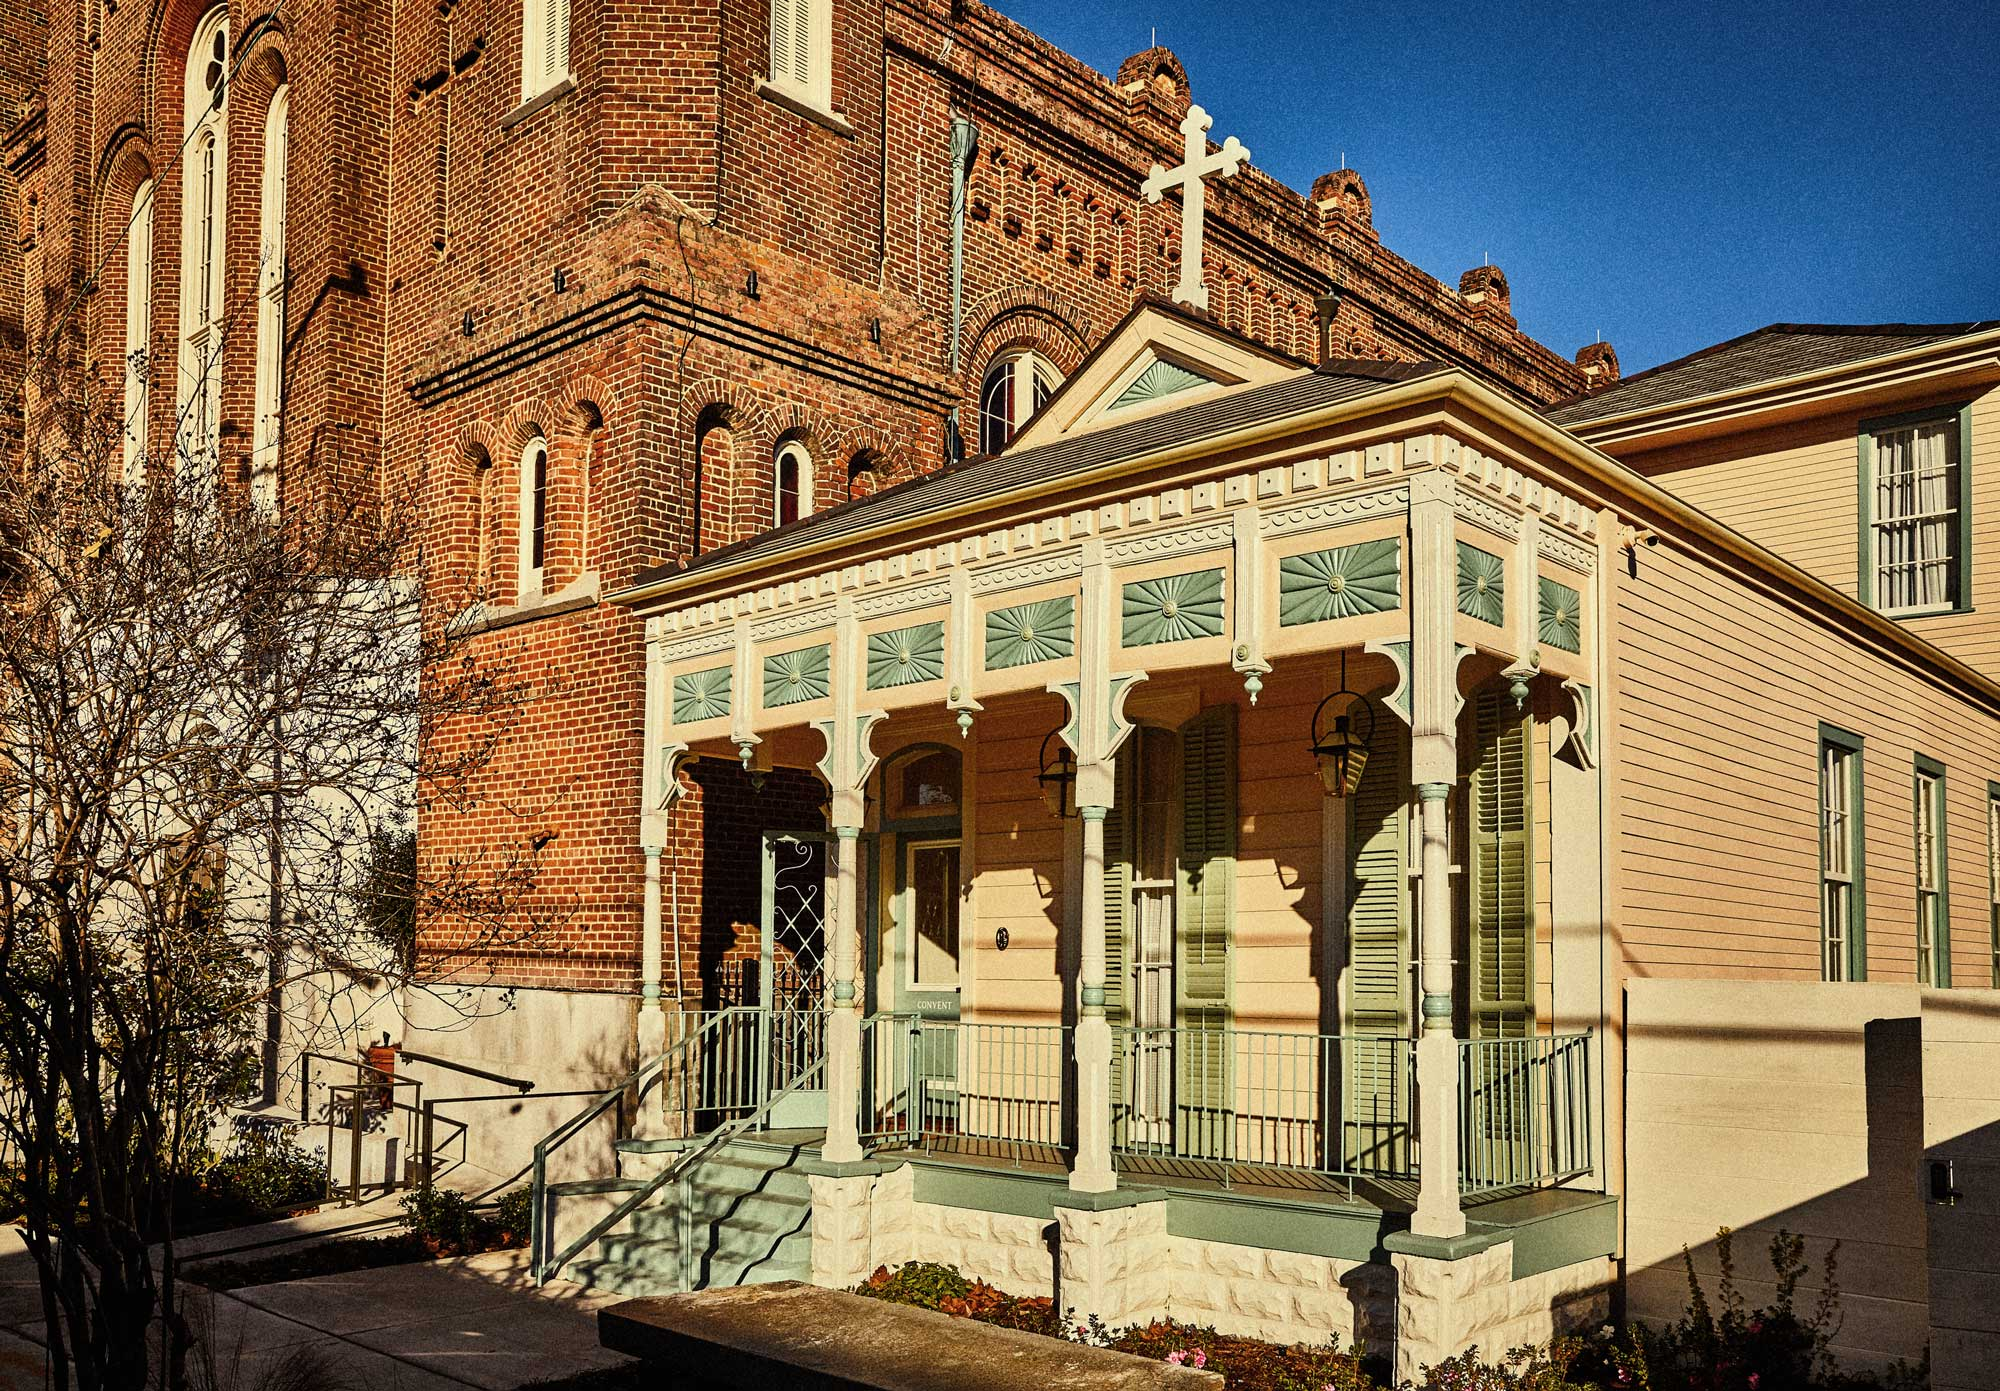 20-CH_Peter_And_Paul_New_Orleans_Convent_Exterior.jpg